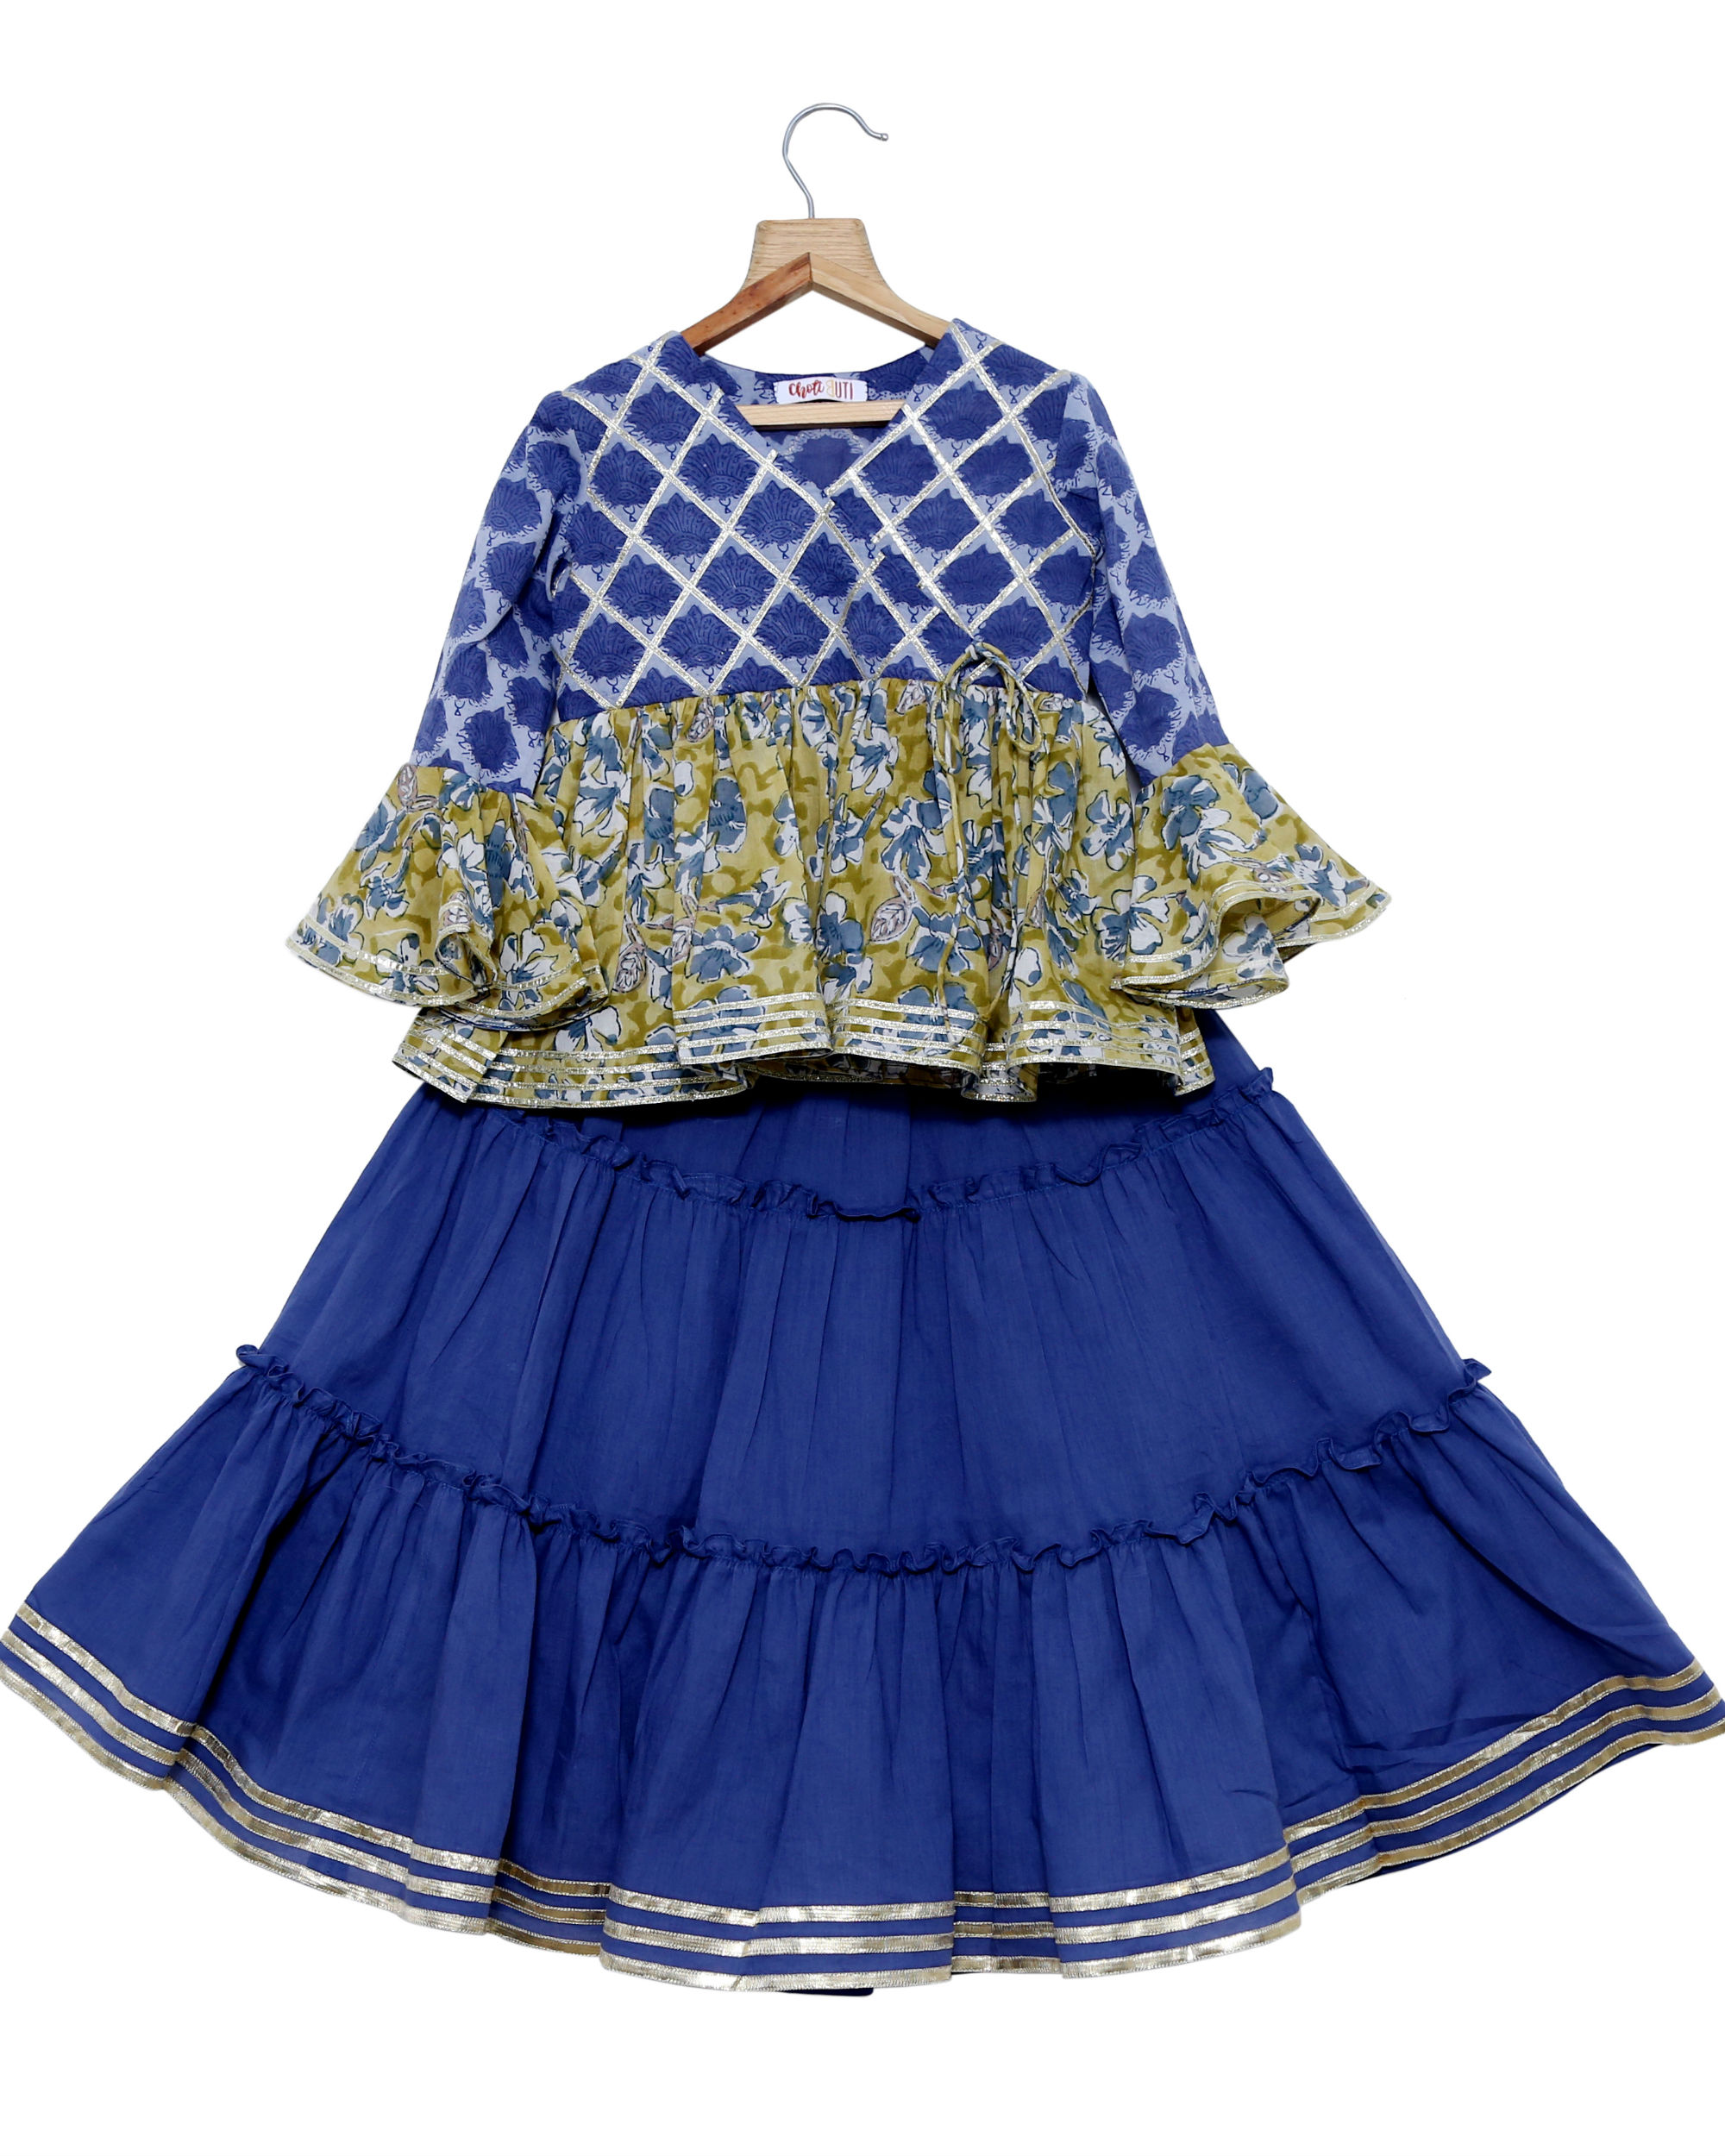 Blue peplum top skirt set